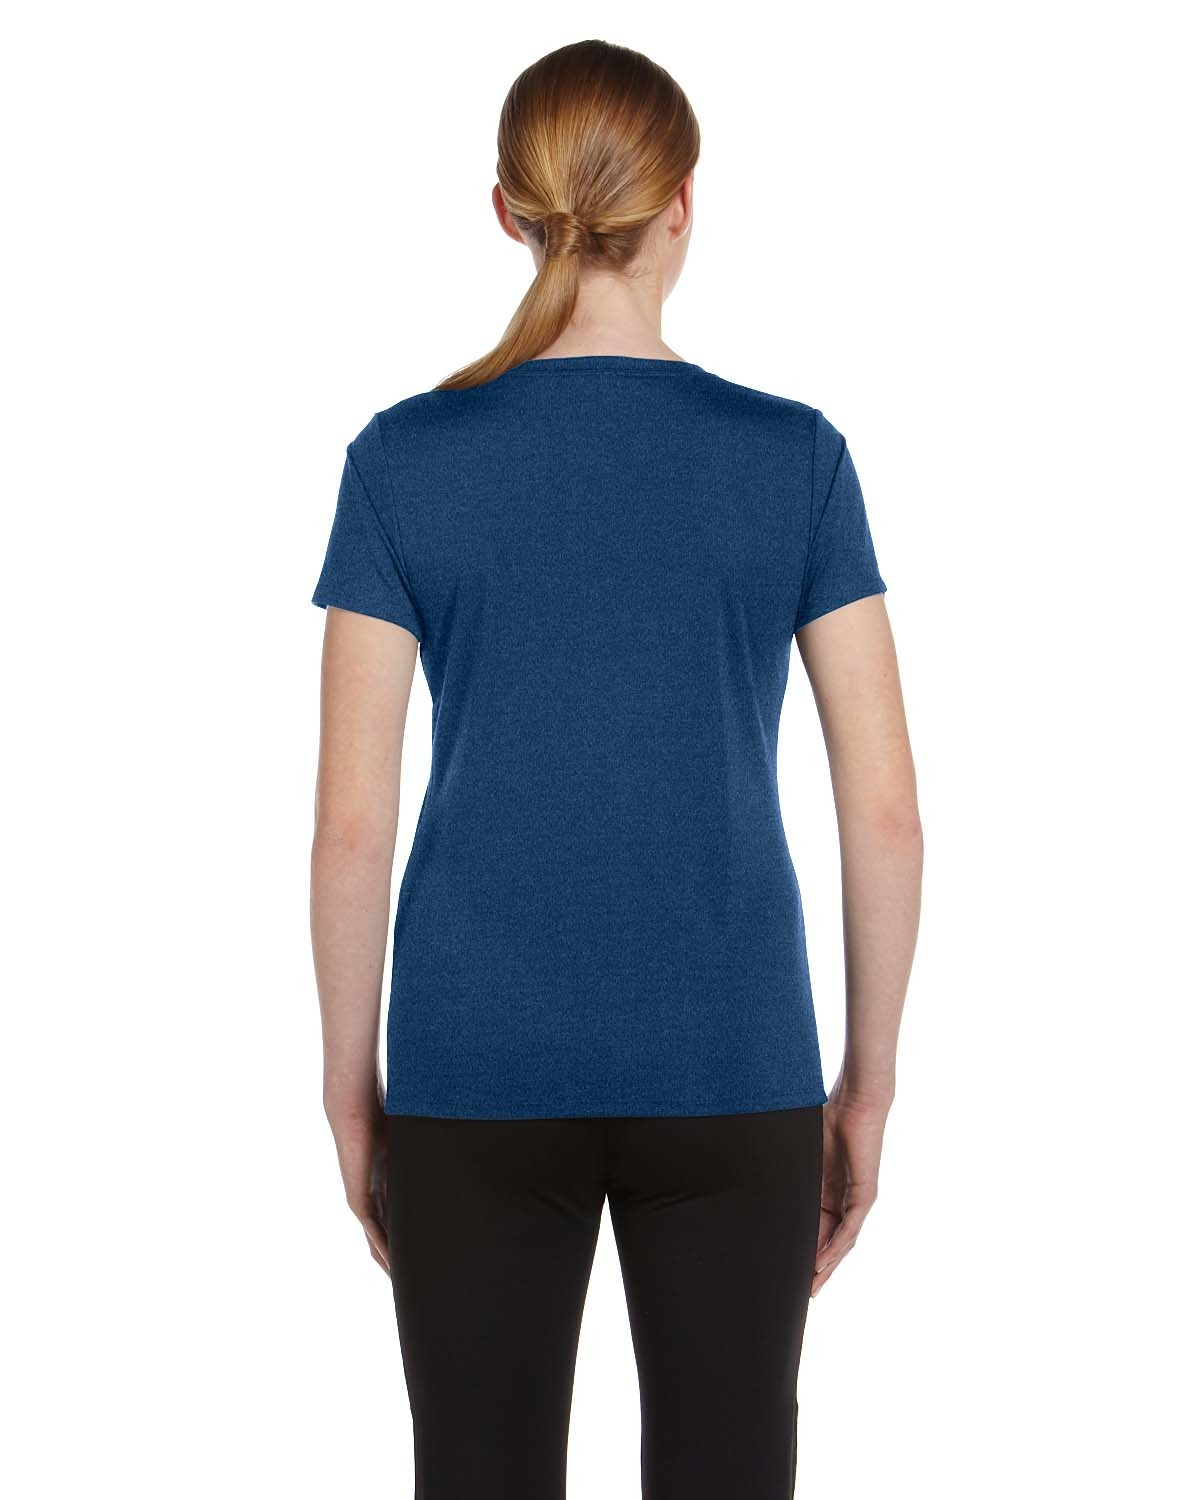 W1009 All Sport HEATHER NAVY